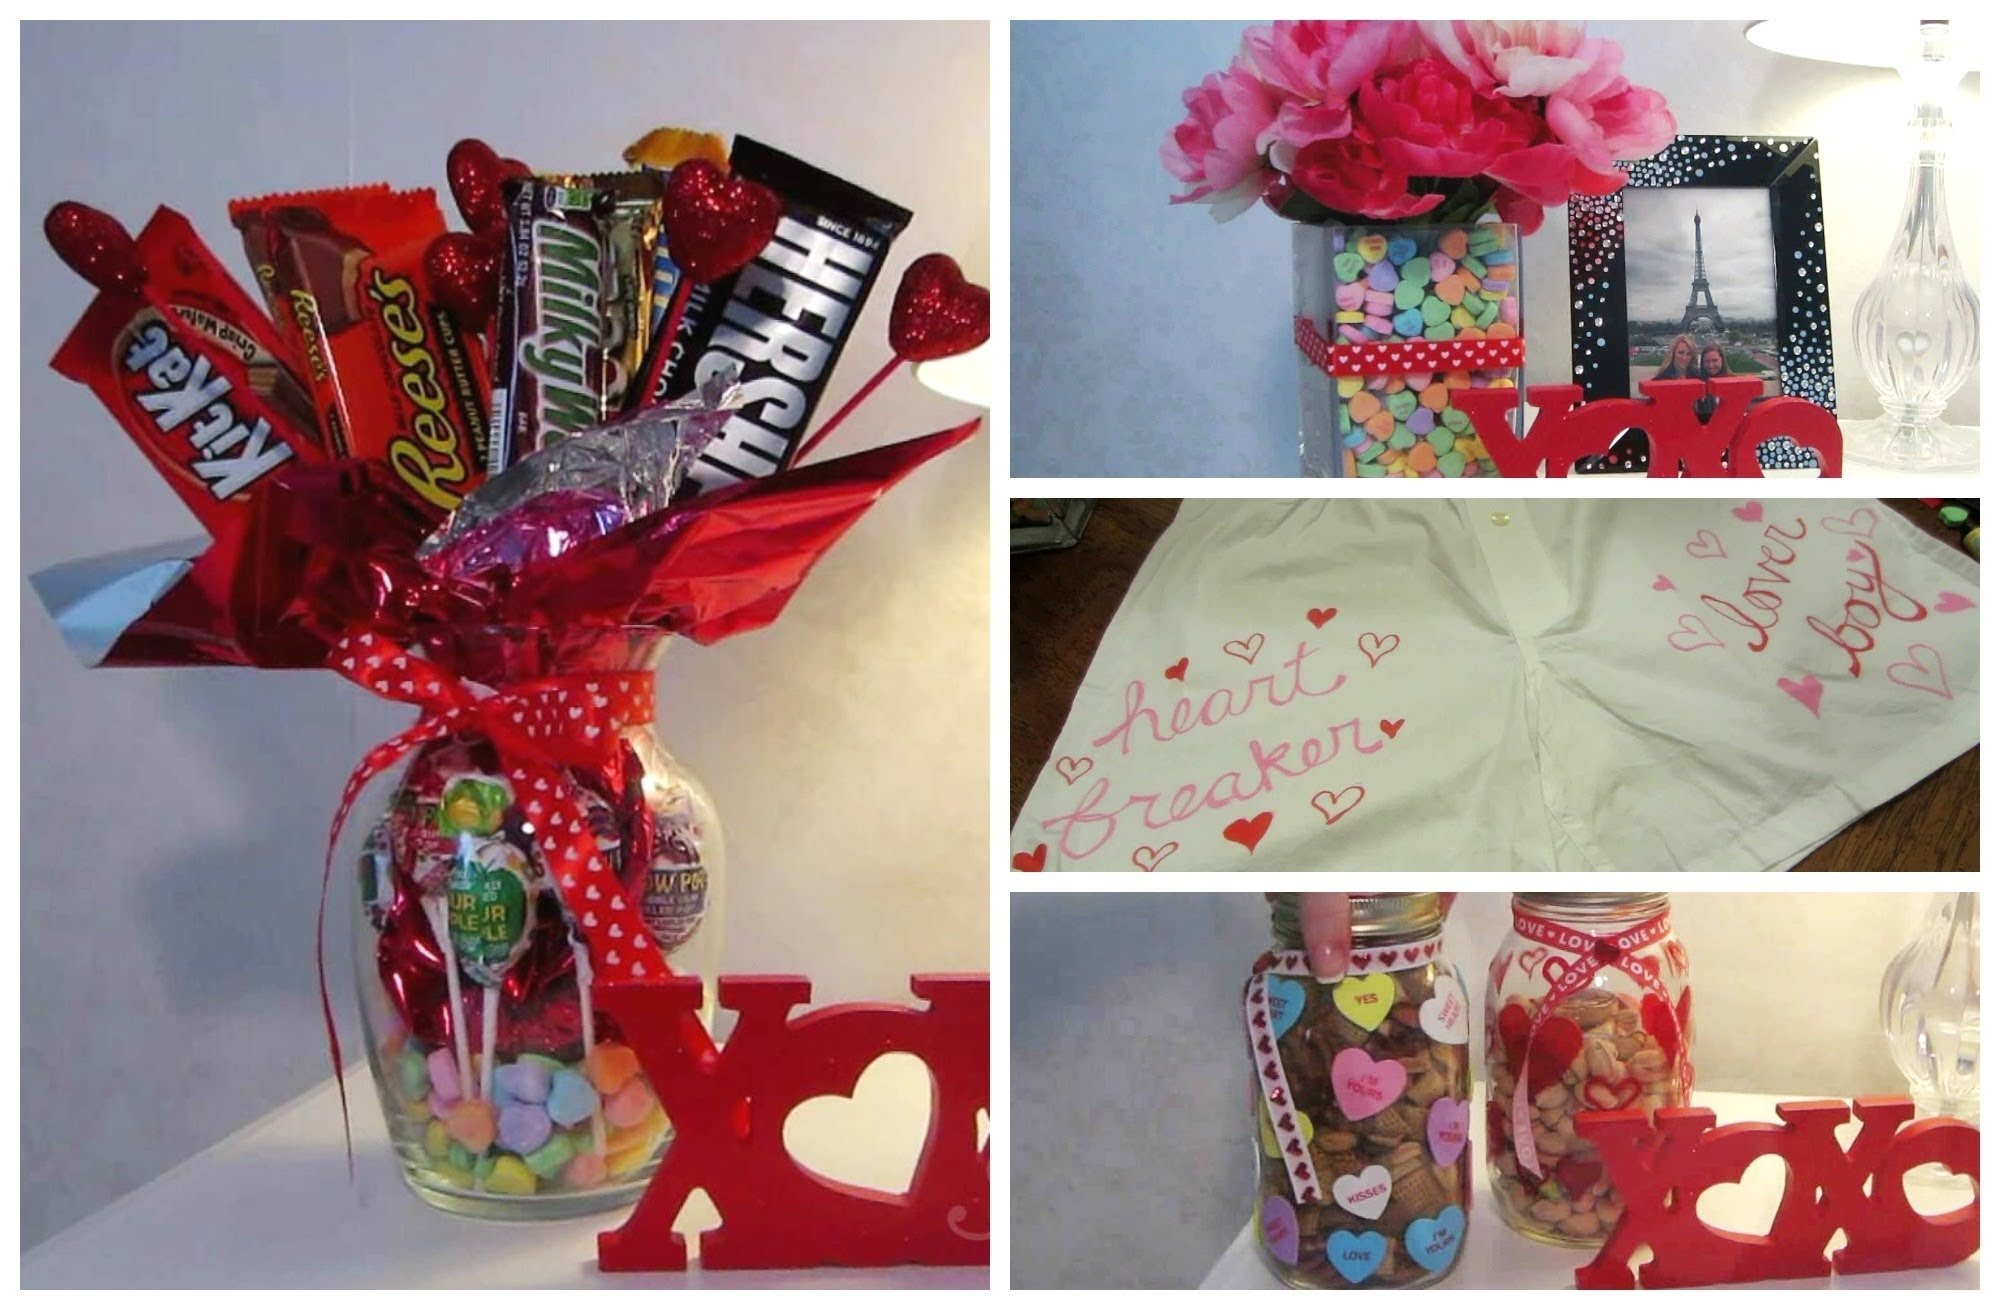 10 Fantastic Valentine Gifts Ideas For Her cute valentine diy gift ideas youtube 6 2021